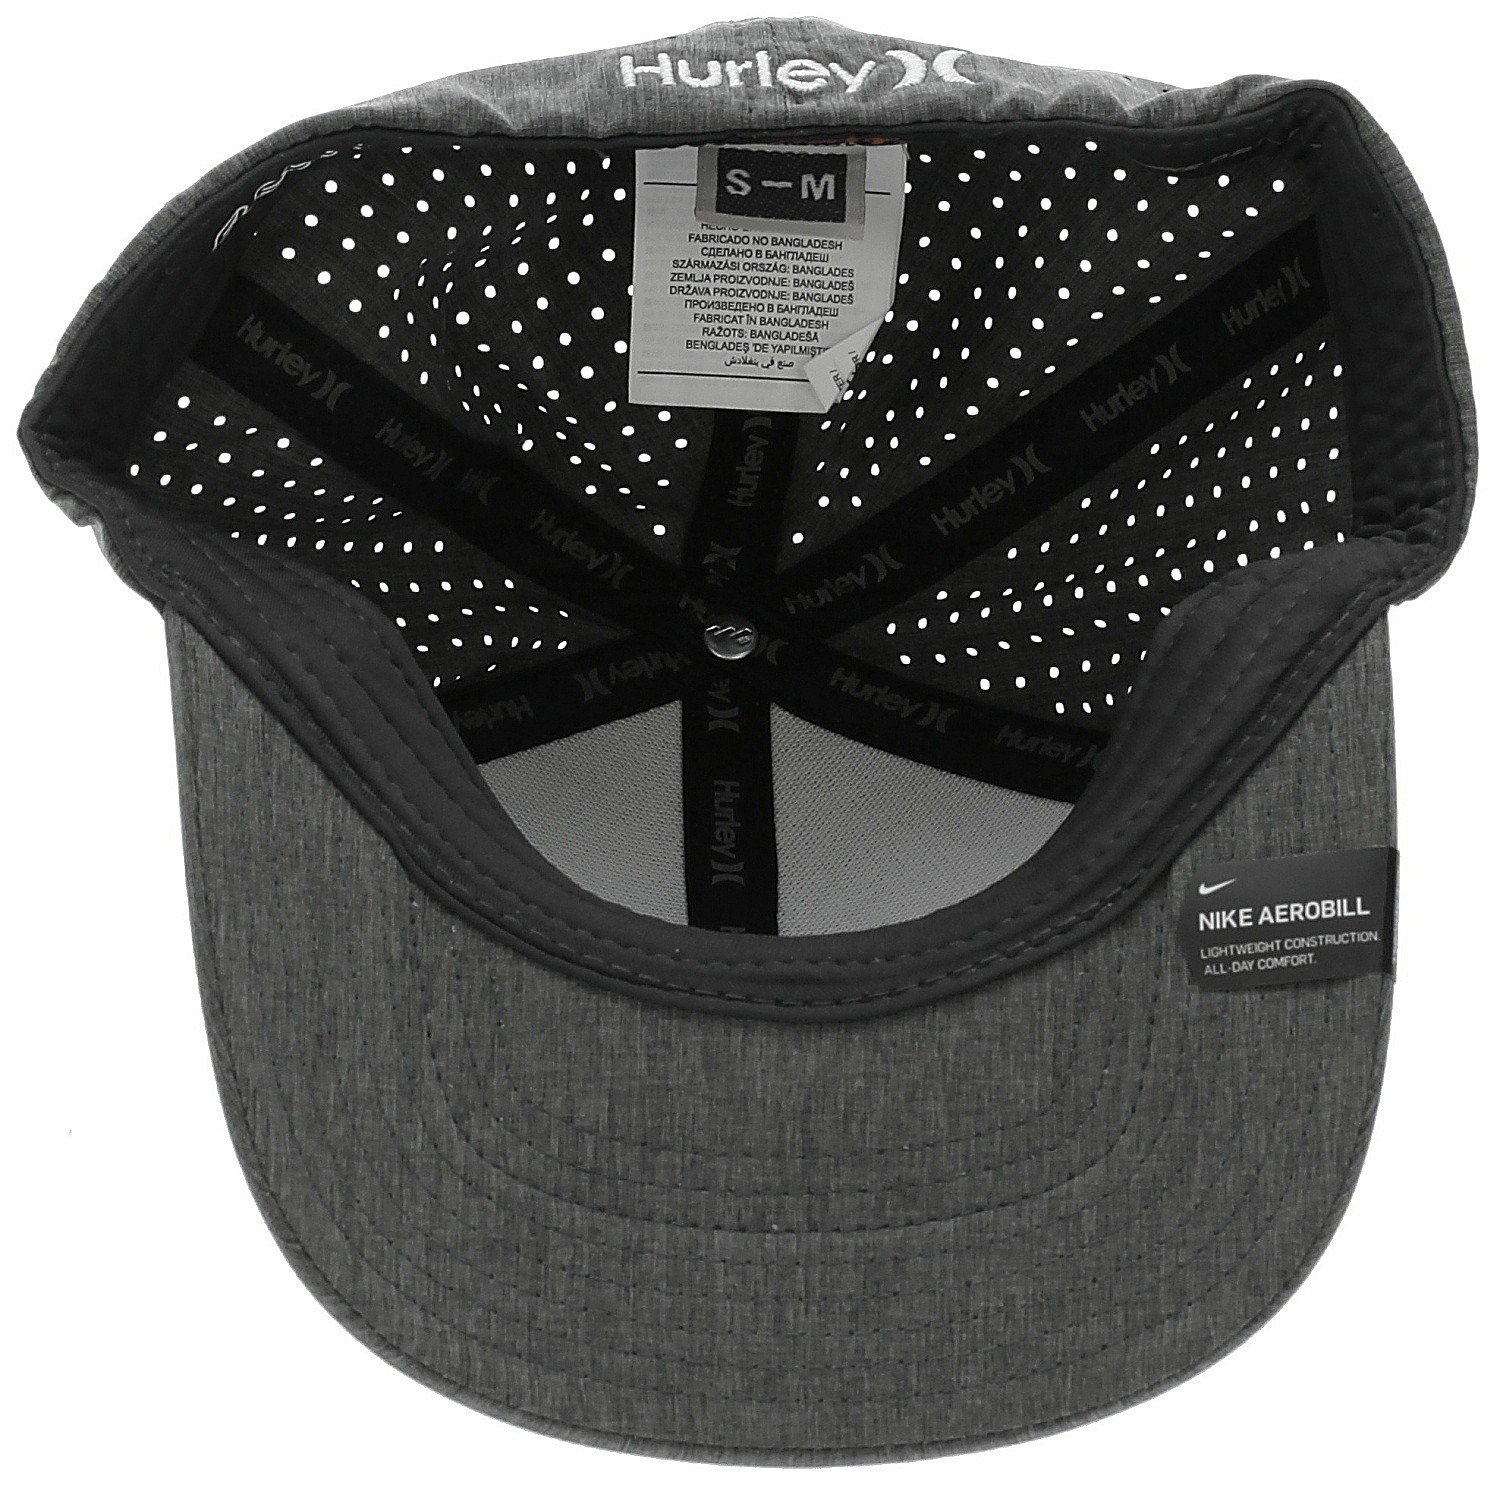 deffbfaa684 purchase hurley phantom unisex hat yqwavm f7e10 115b2  hot cap hurley  phantom 4.0 flexfit 032 black heather white. no longer available. 1a3c7